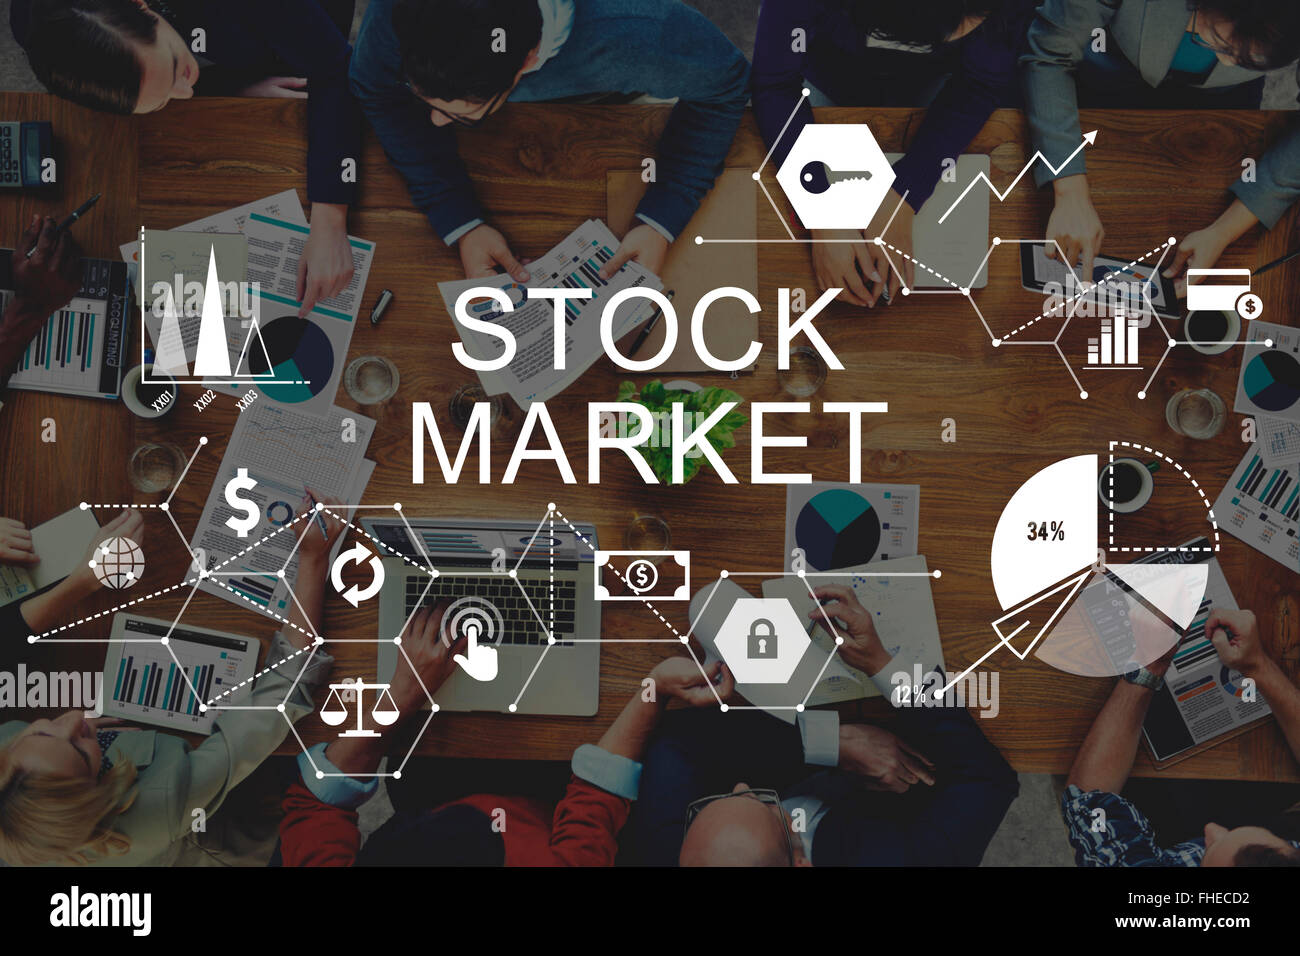 Stock Market Finance Financial Issues Concept - Stock Image